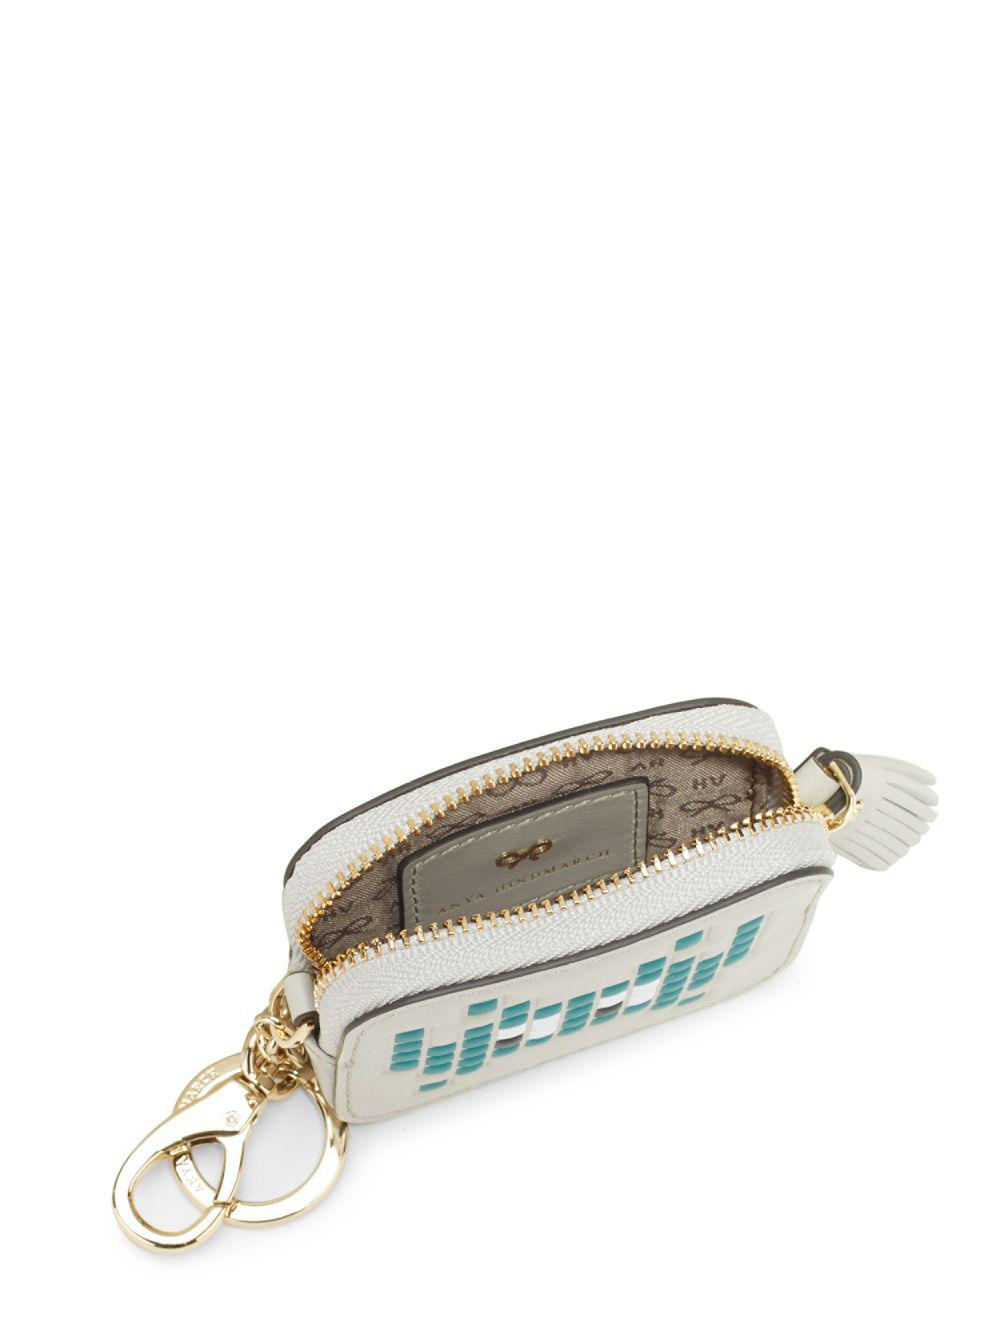 anya hindmarch love is coin purse